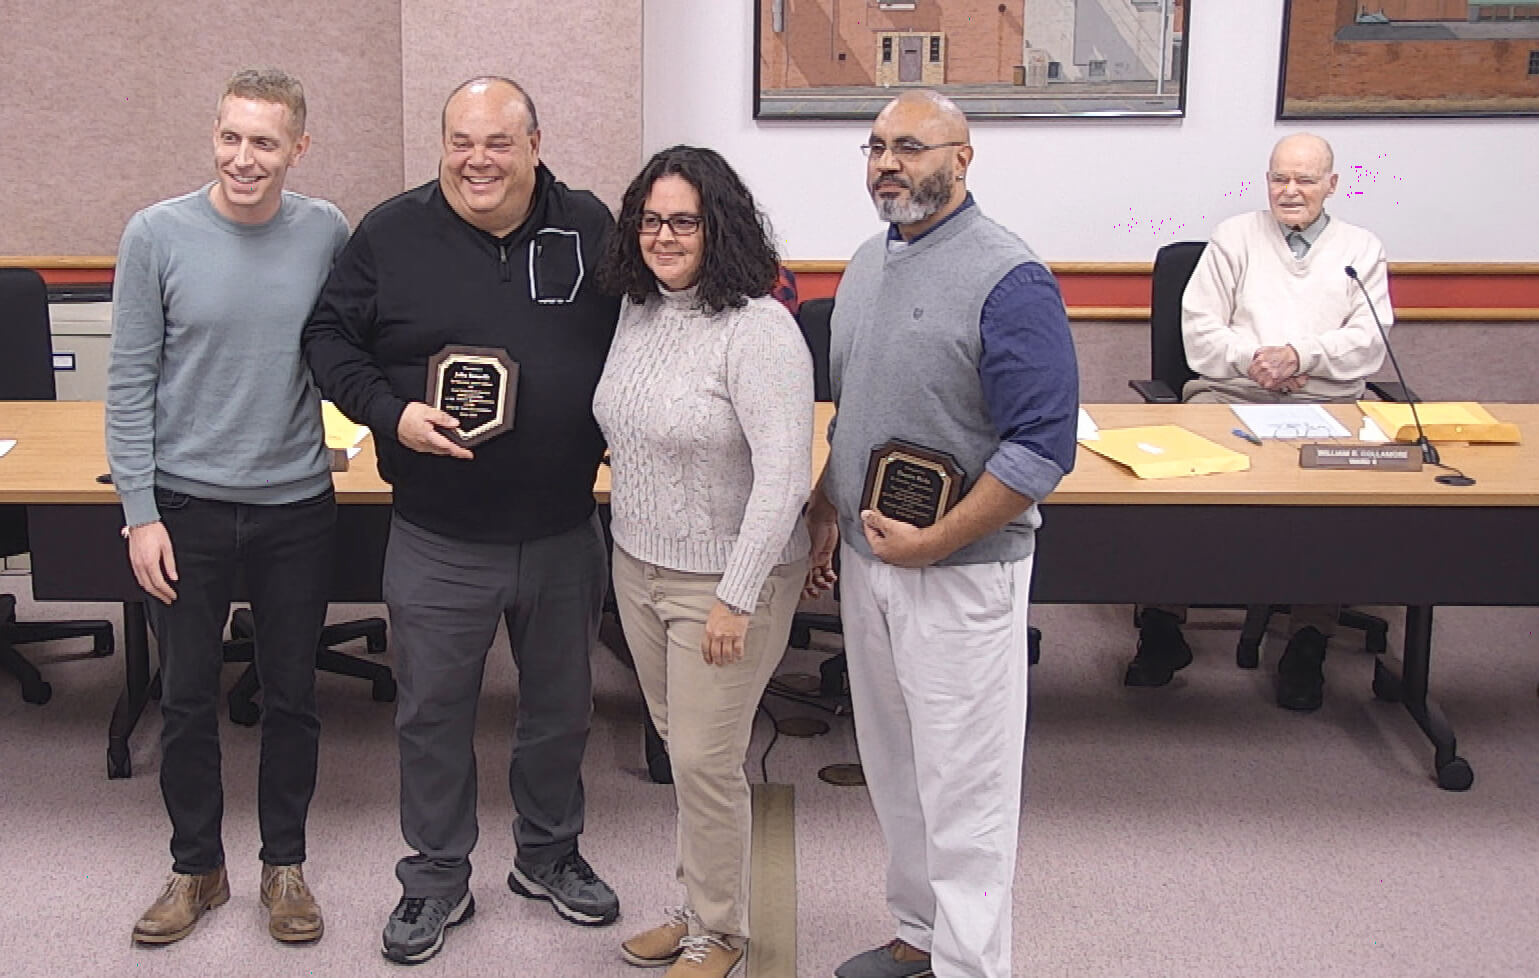 PRESS RELEASE: Holyoke Public Schools Thanks Long-Term School Committee Members for their Exceptional Service